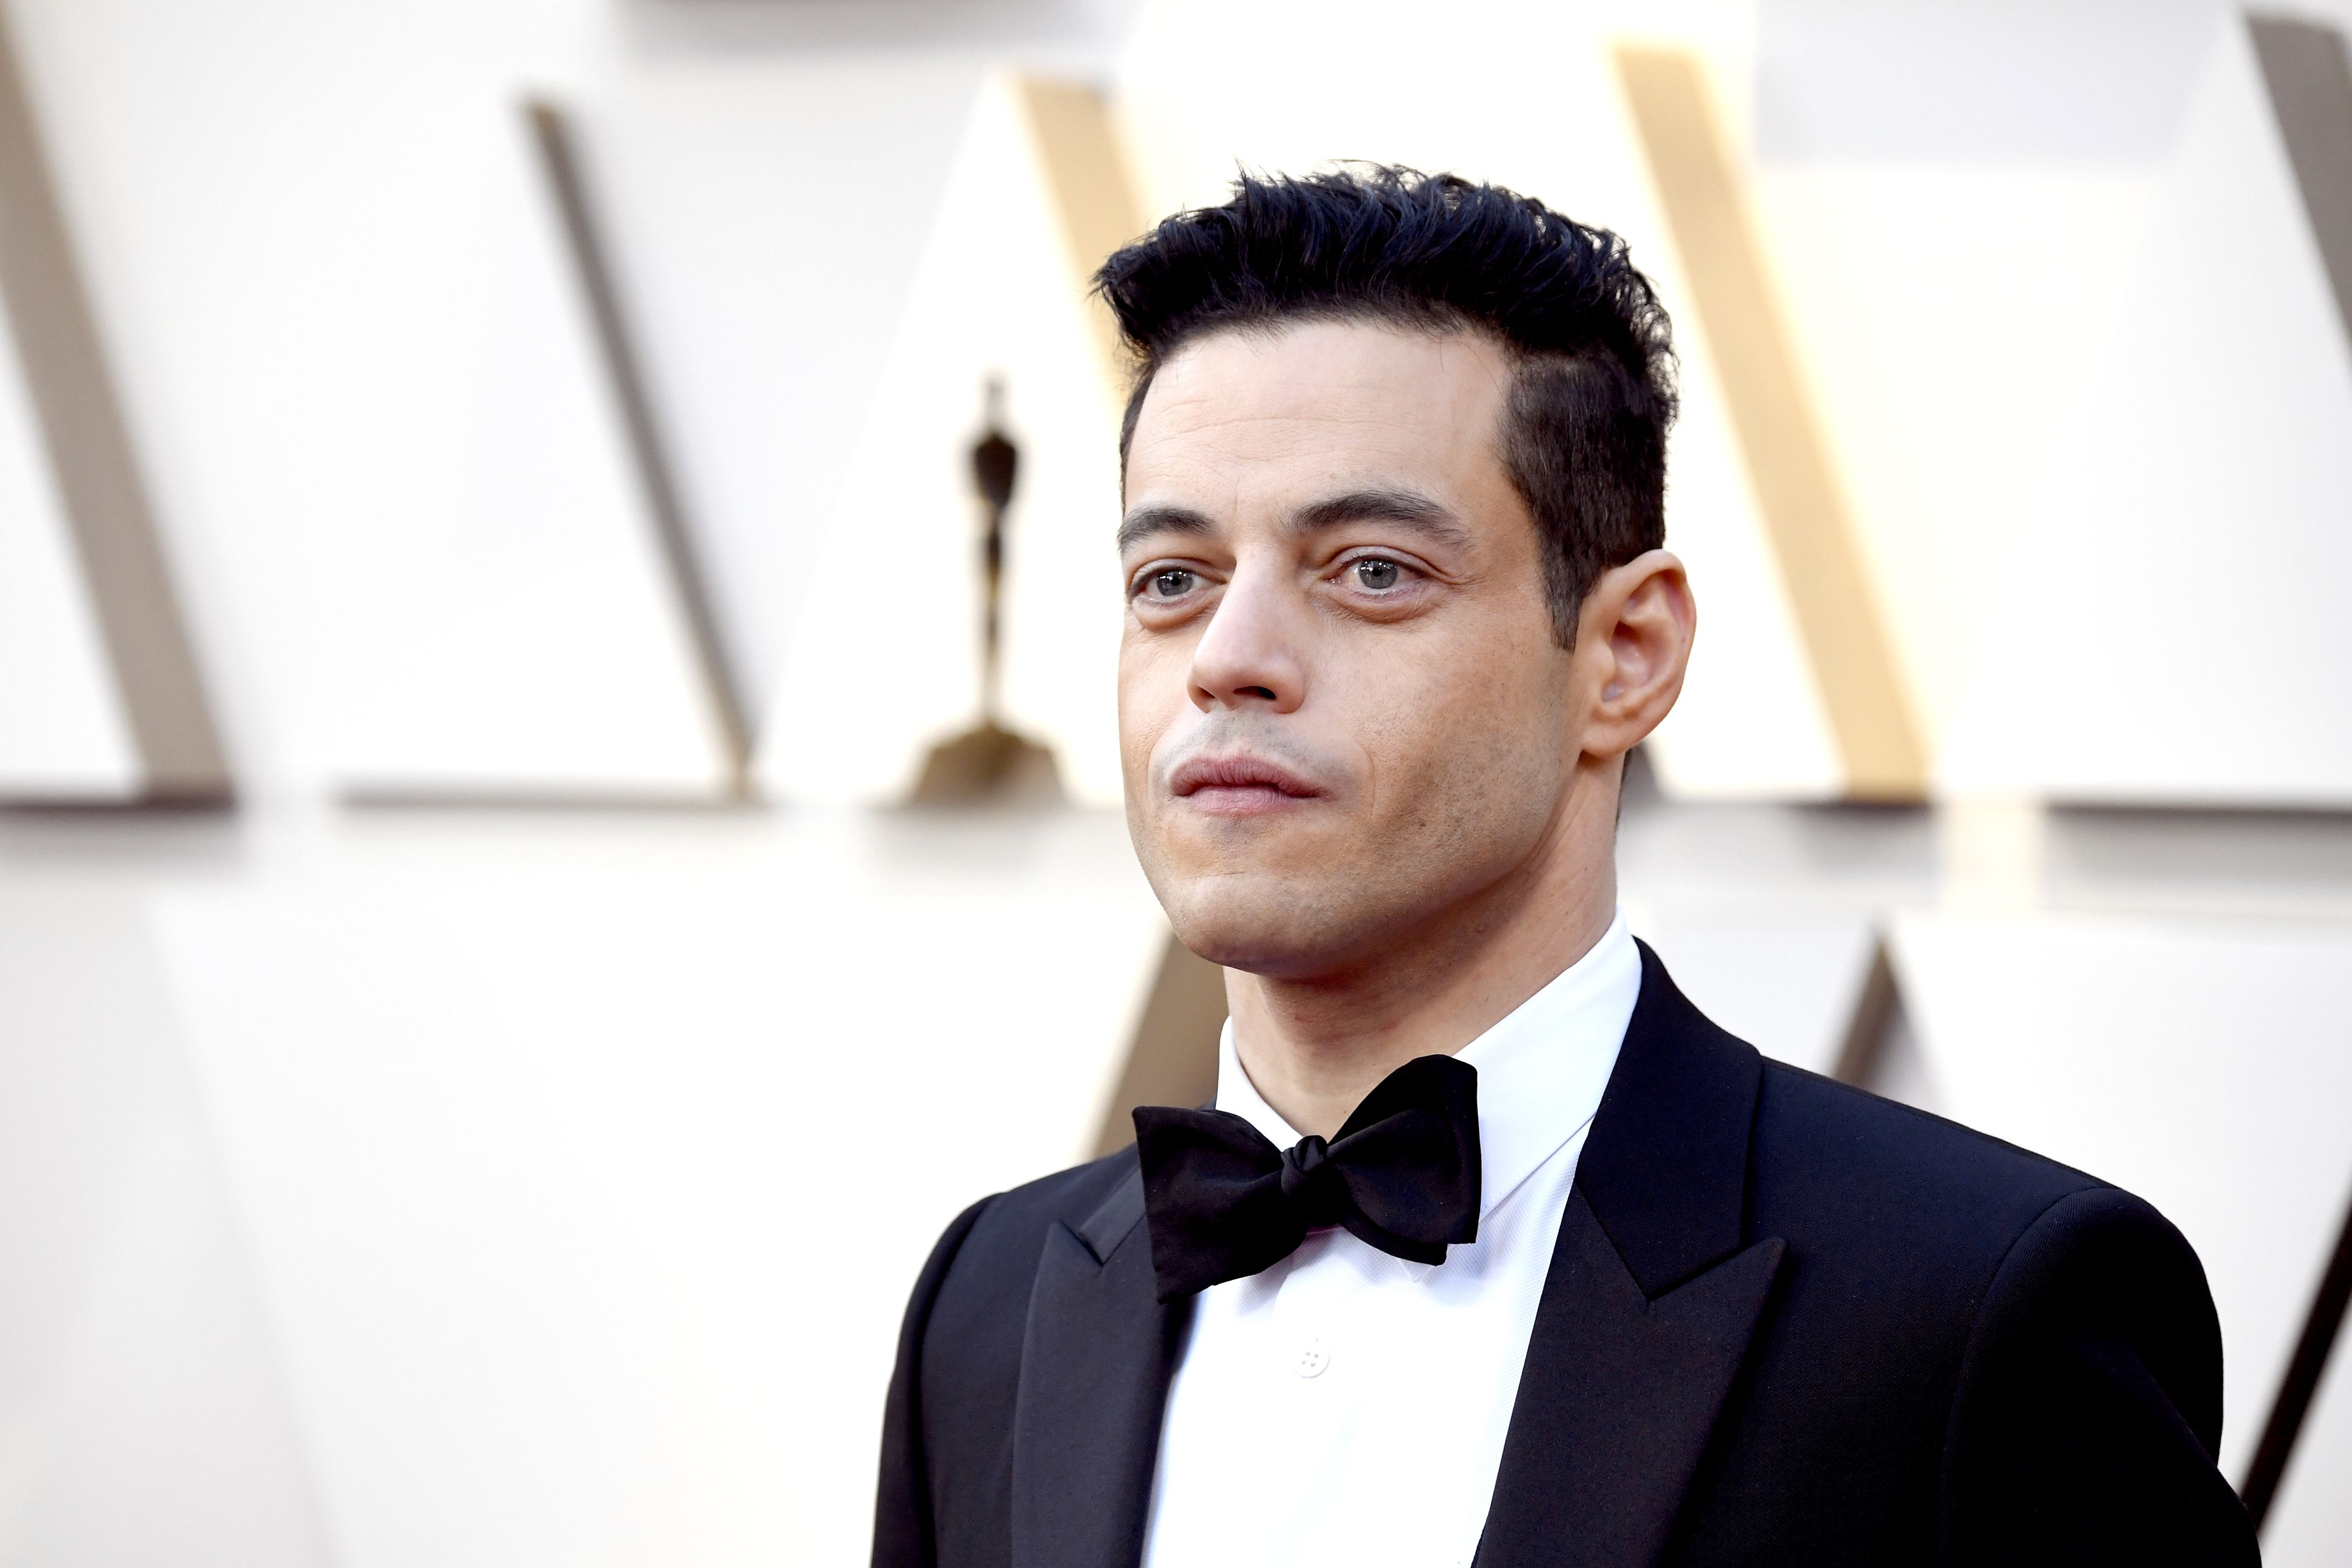 """Exclusive: James Bond villain Andrew Scott says Rami Malek will do something """"surprising"""" in No Time to Die"""